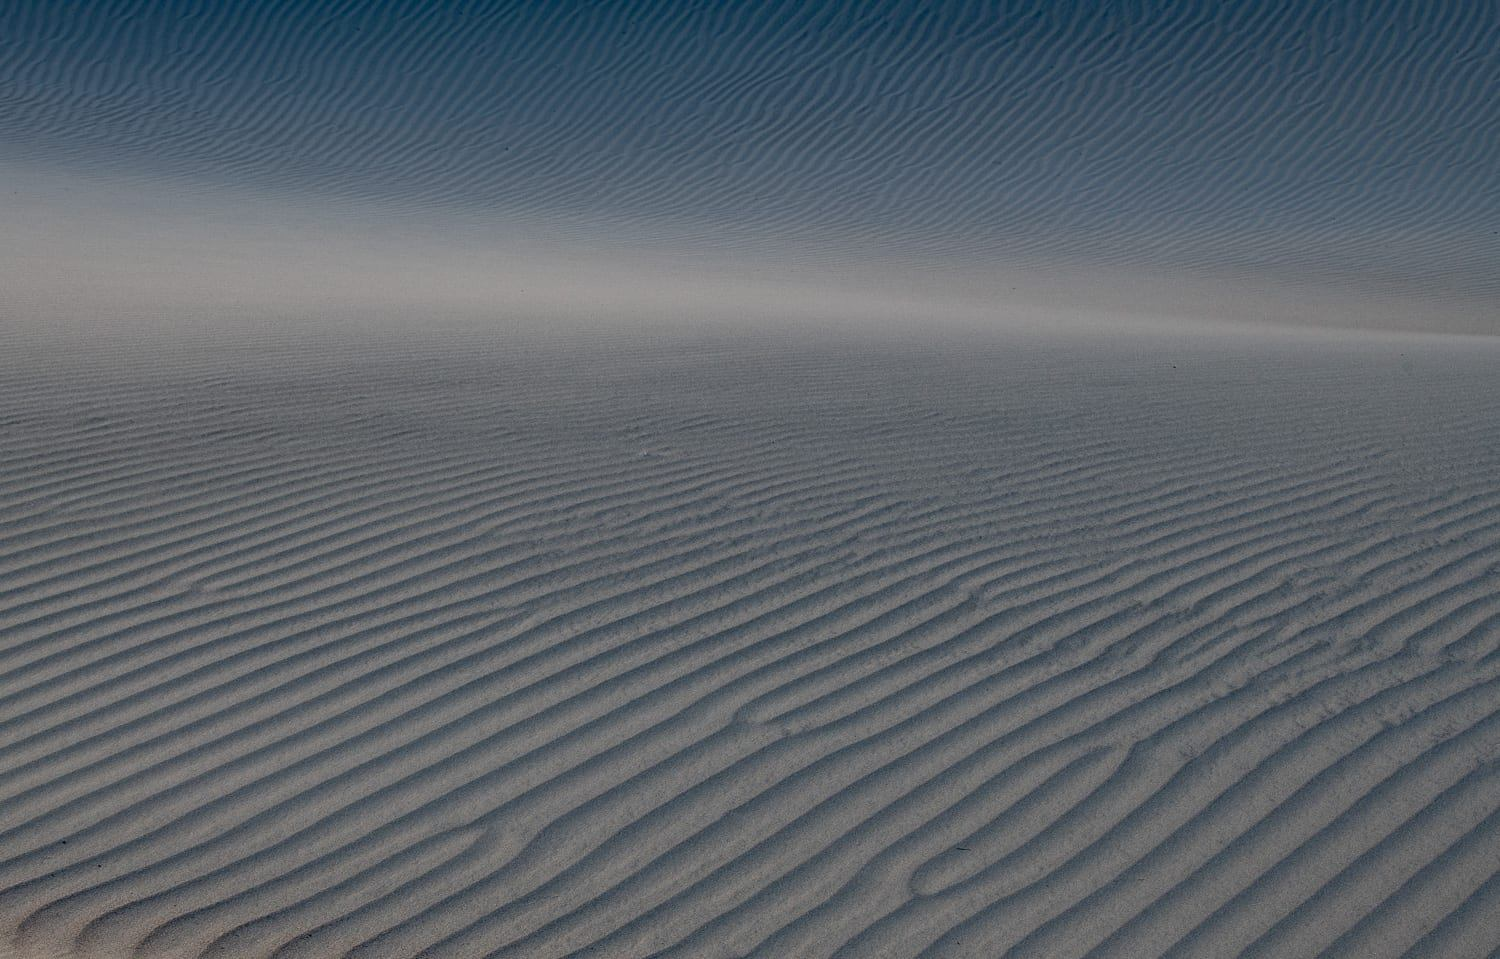 Death Valley Photography Workshop 2020 Photo © Mike Tiret